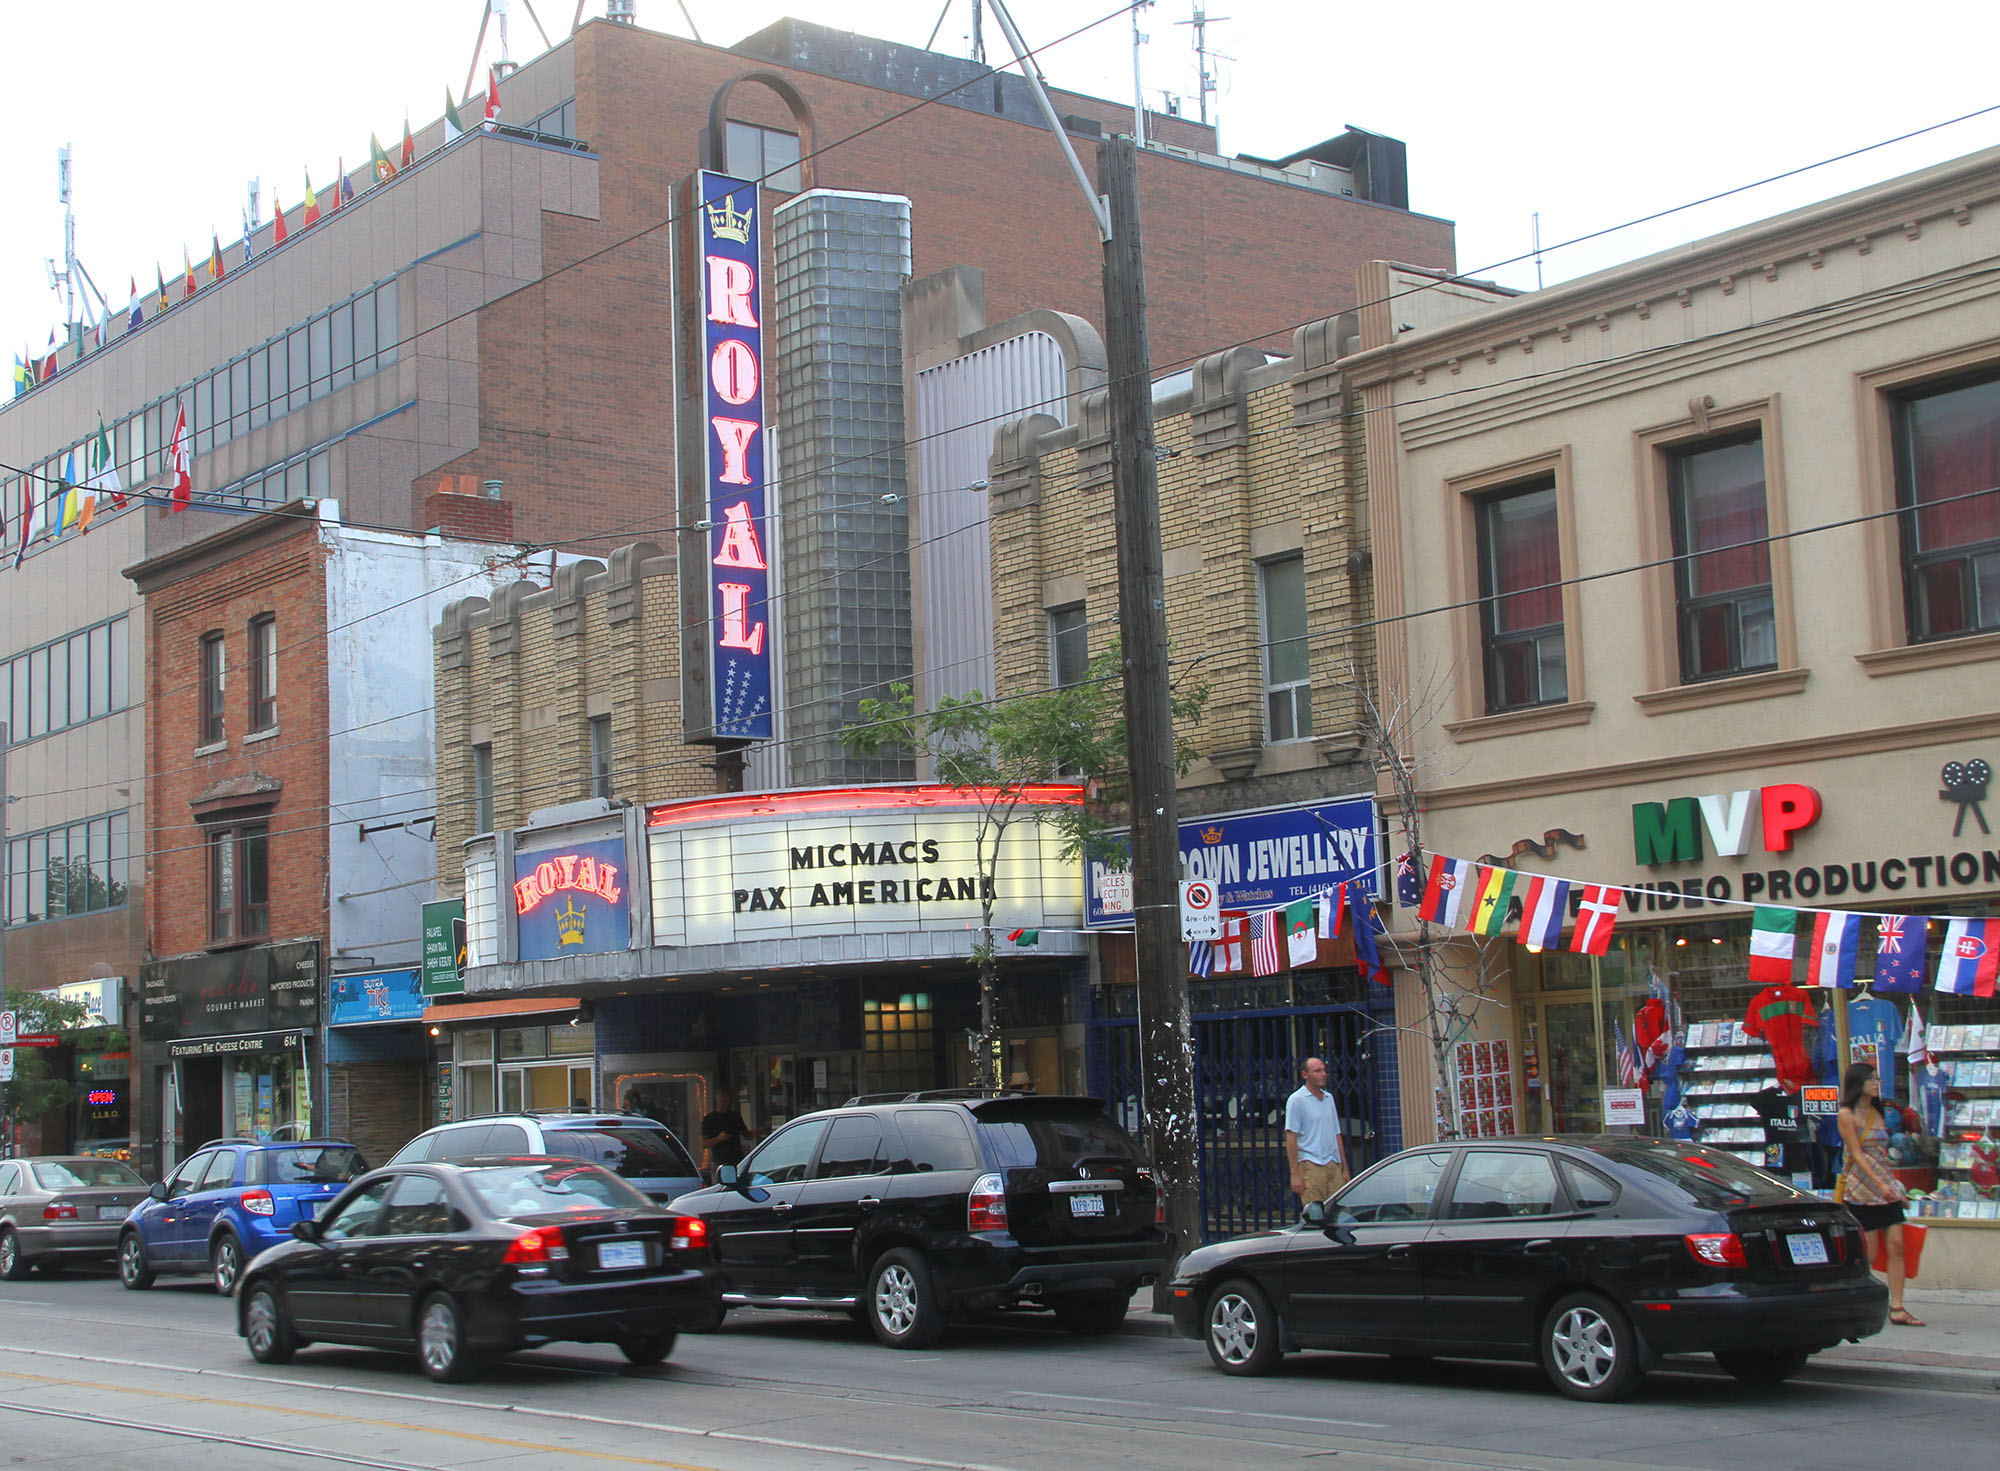 The Royal Cinema - Toronto